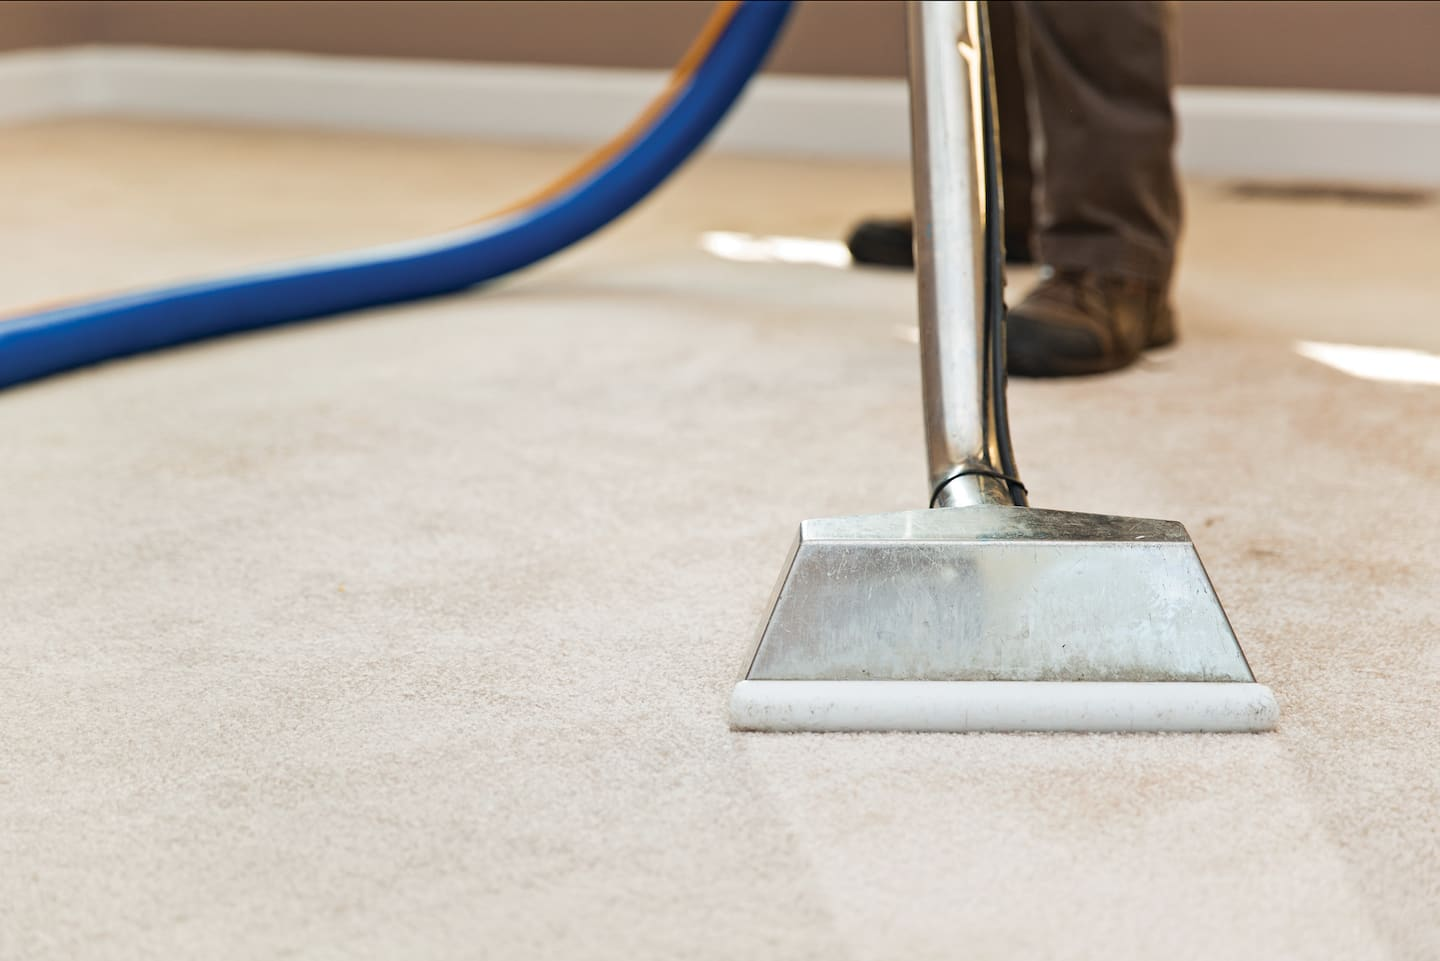 What to Do Before a Carpet Cleaner Arrives